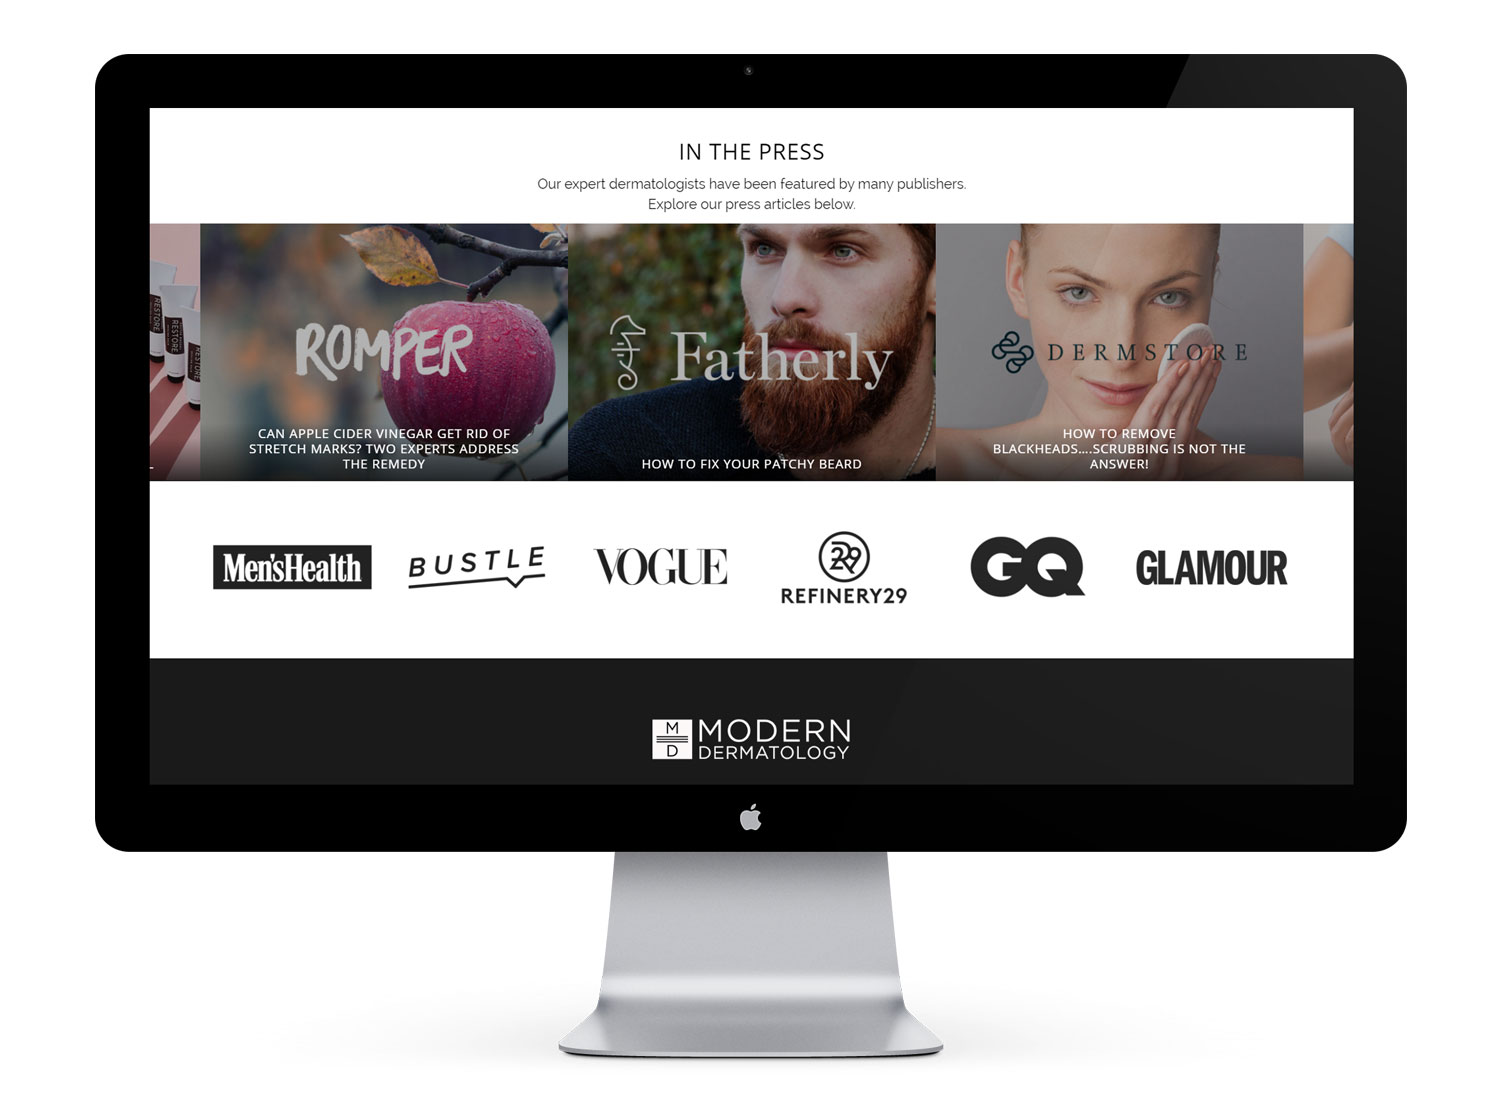 Press Articles slider with logos